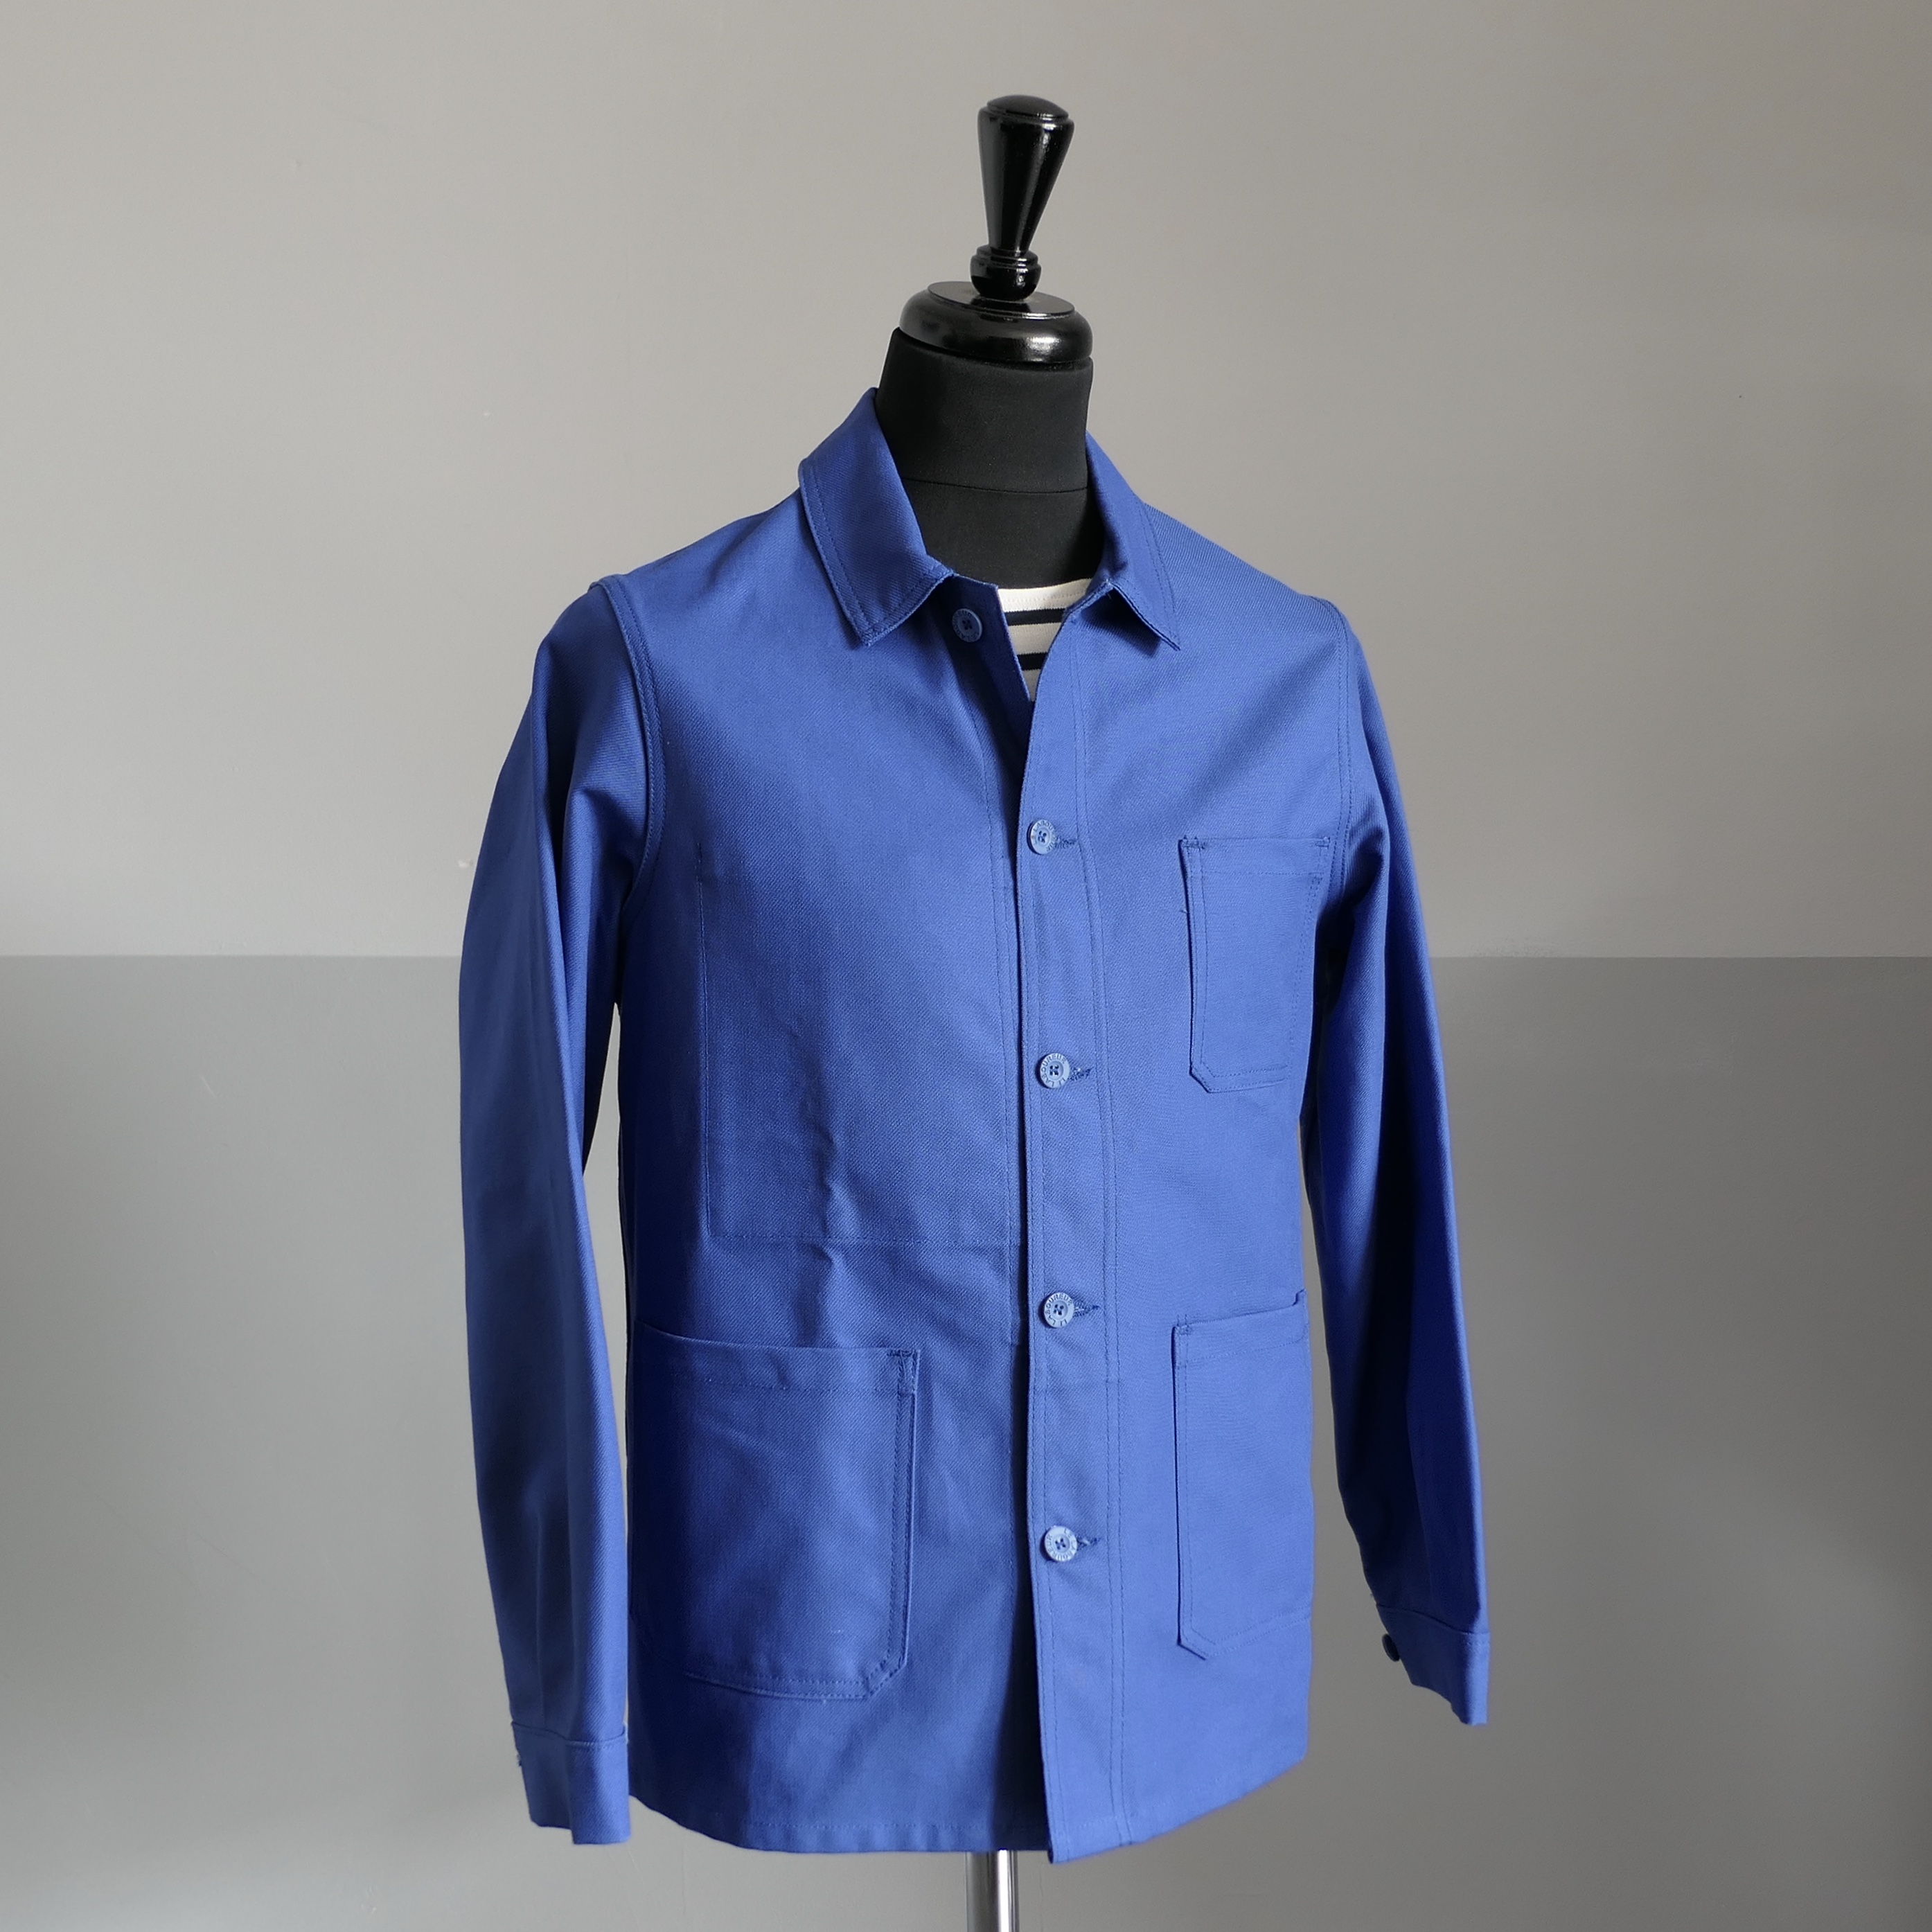 Original Worker's overshirt Bugatti blue